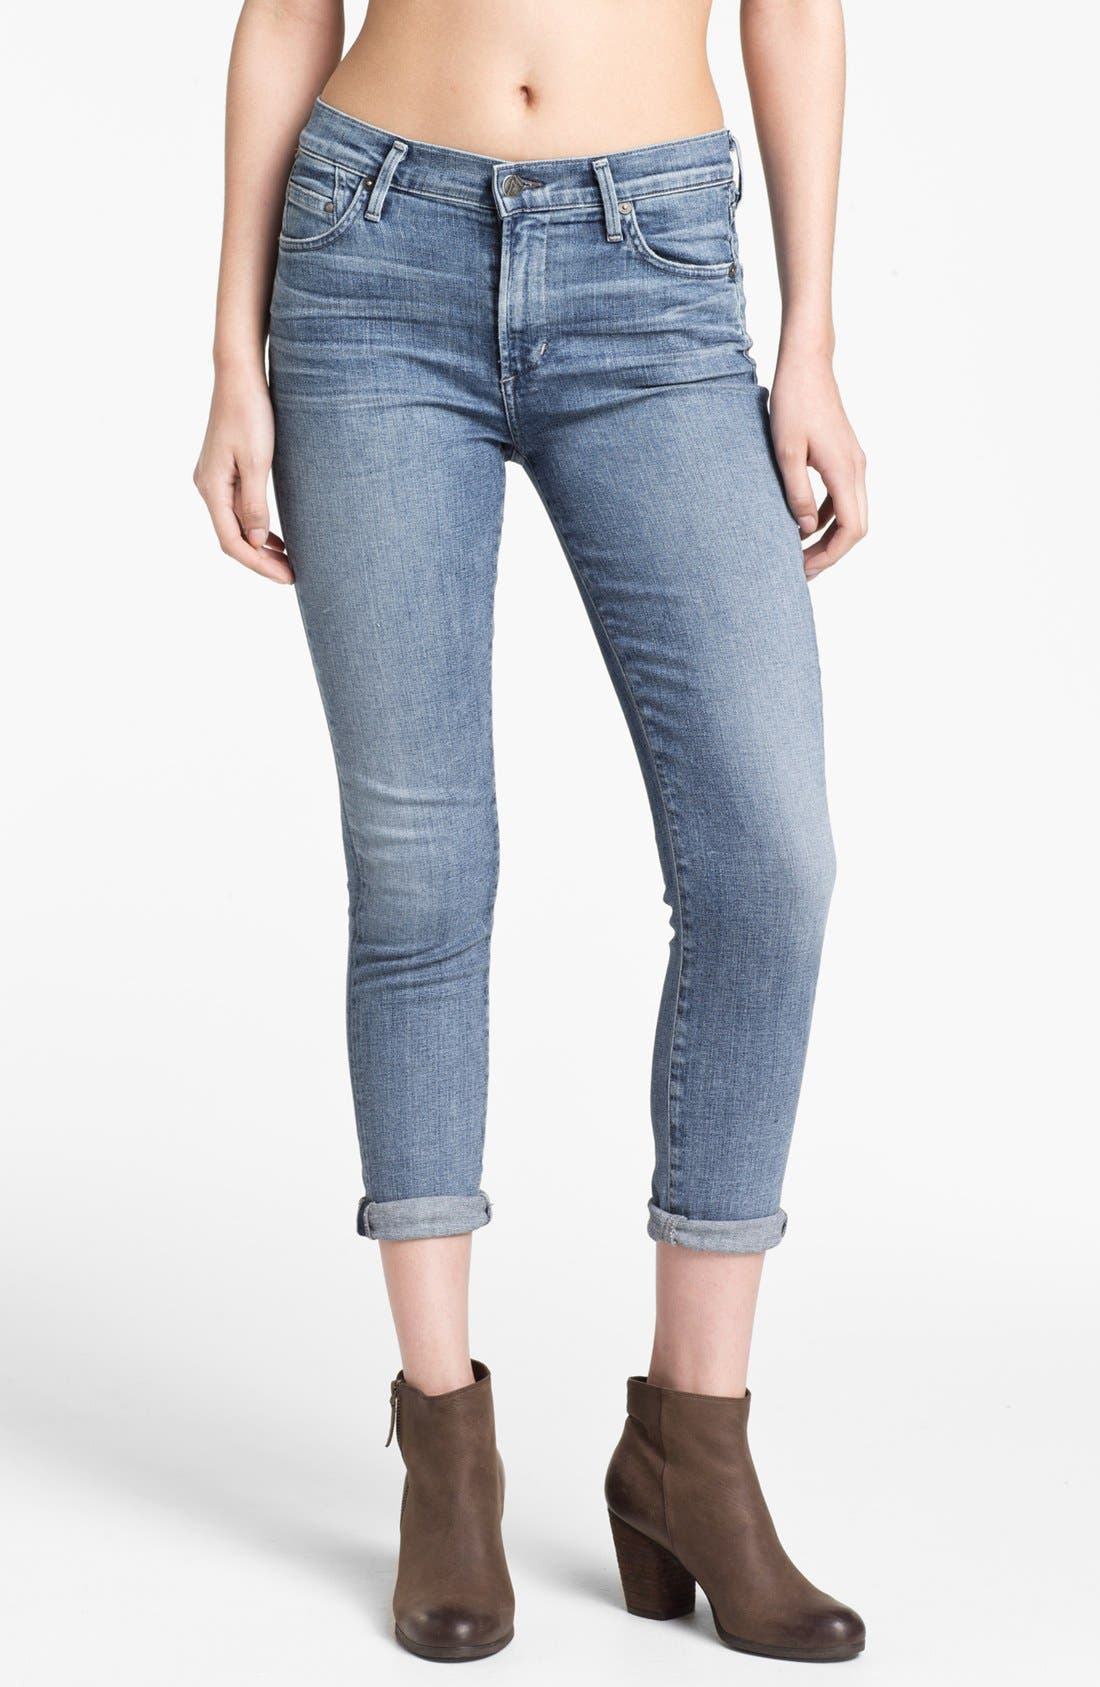 Alternate Image 1 Selected - Citizens of Humanity 'Rocket' High Rise Skinny Jeans (Fizzle)